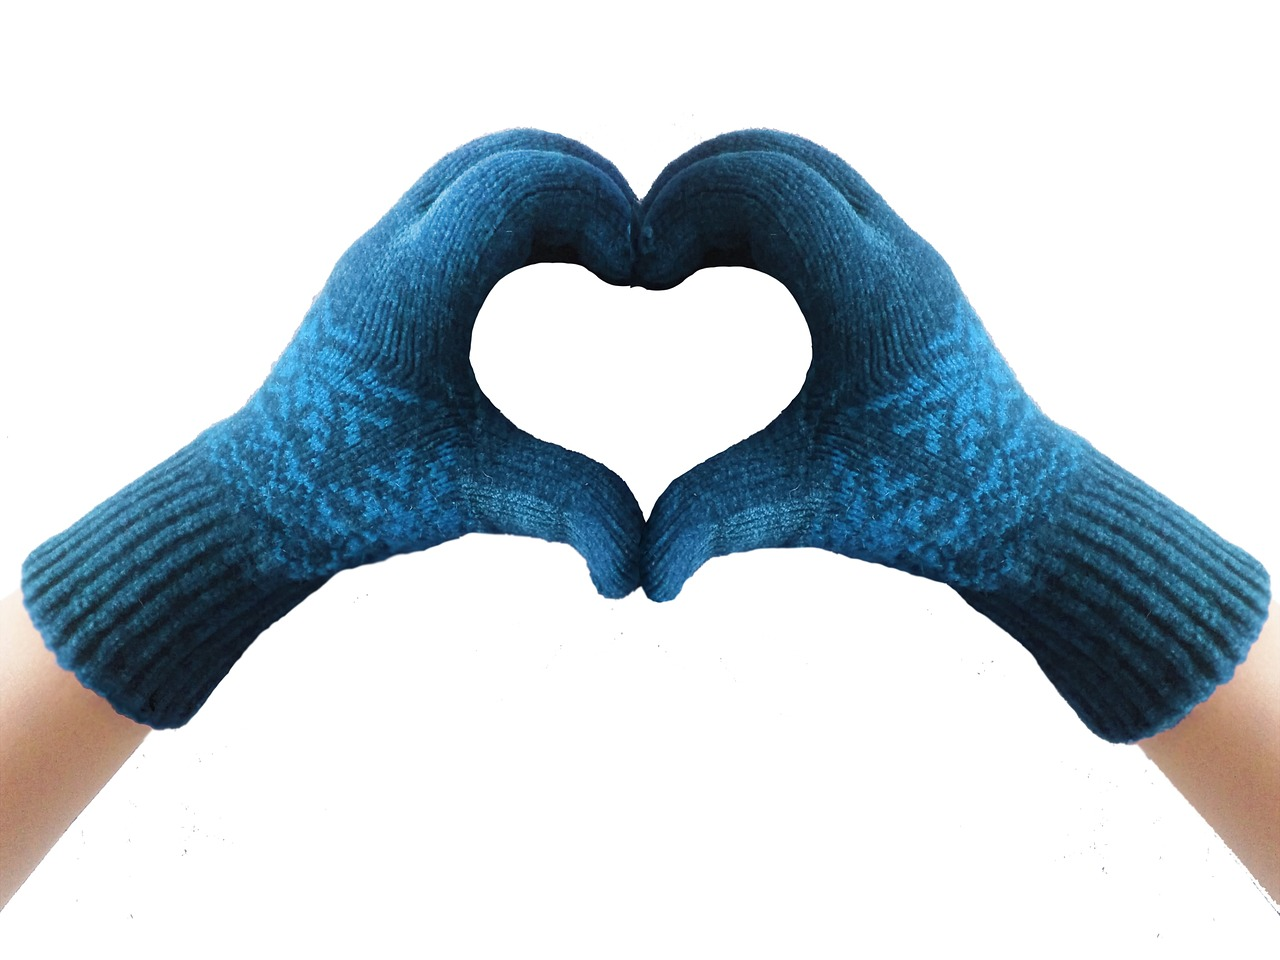 Two hands in blue winter gloves making a heart shape